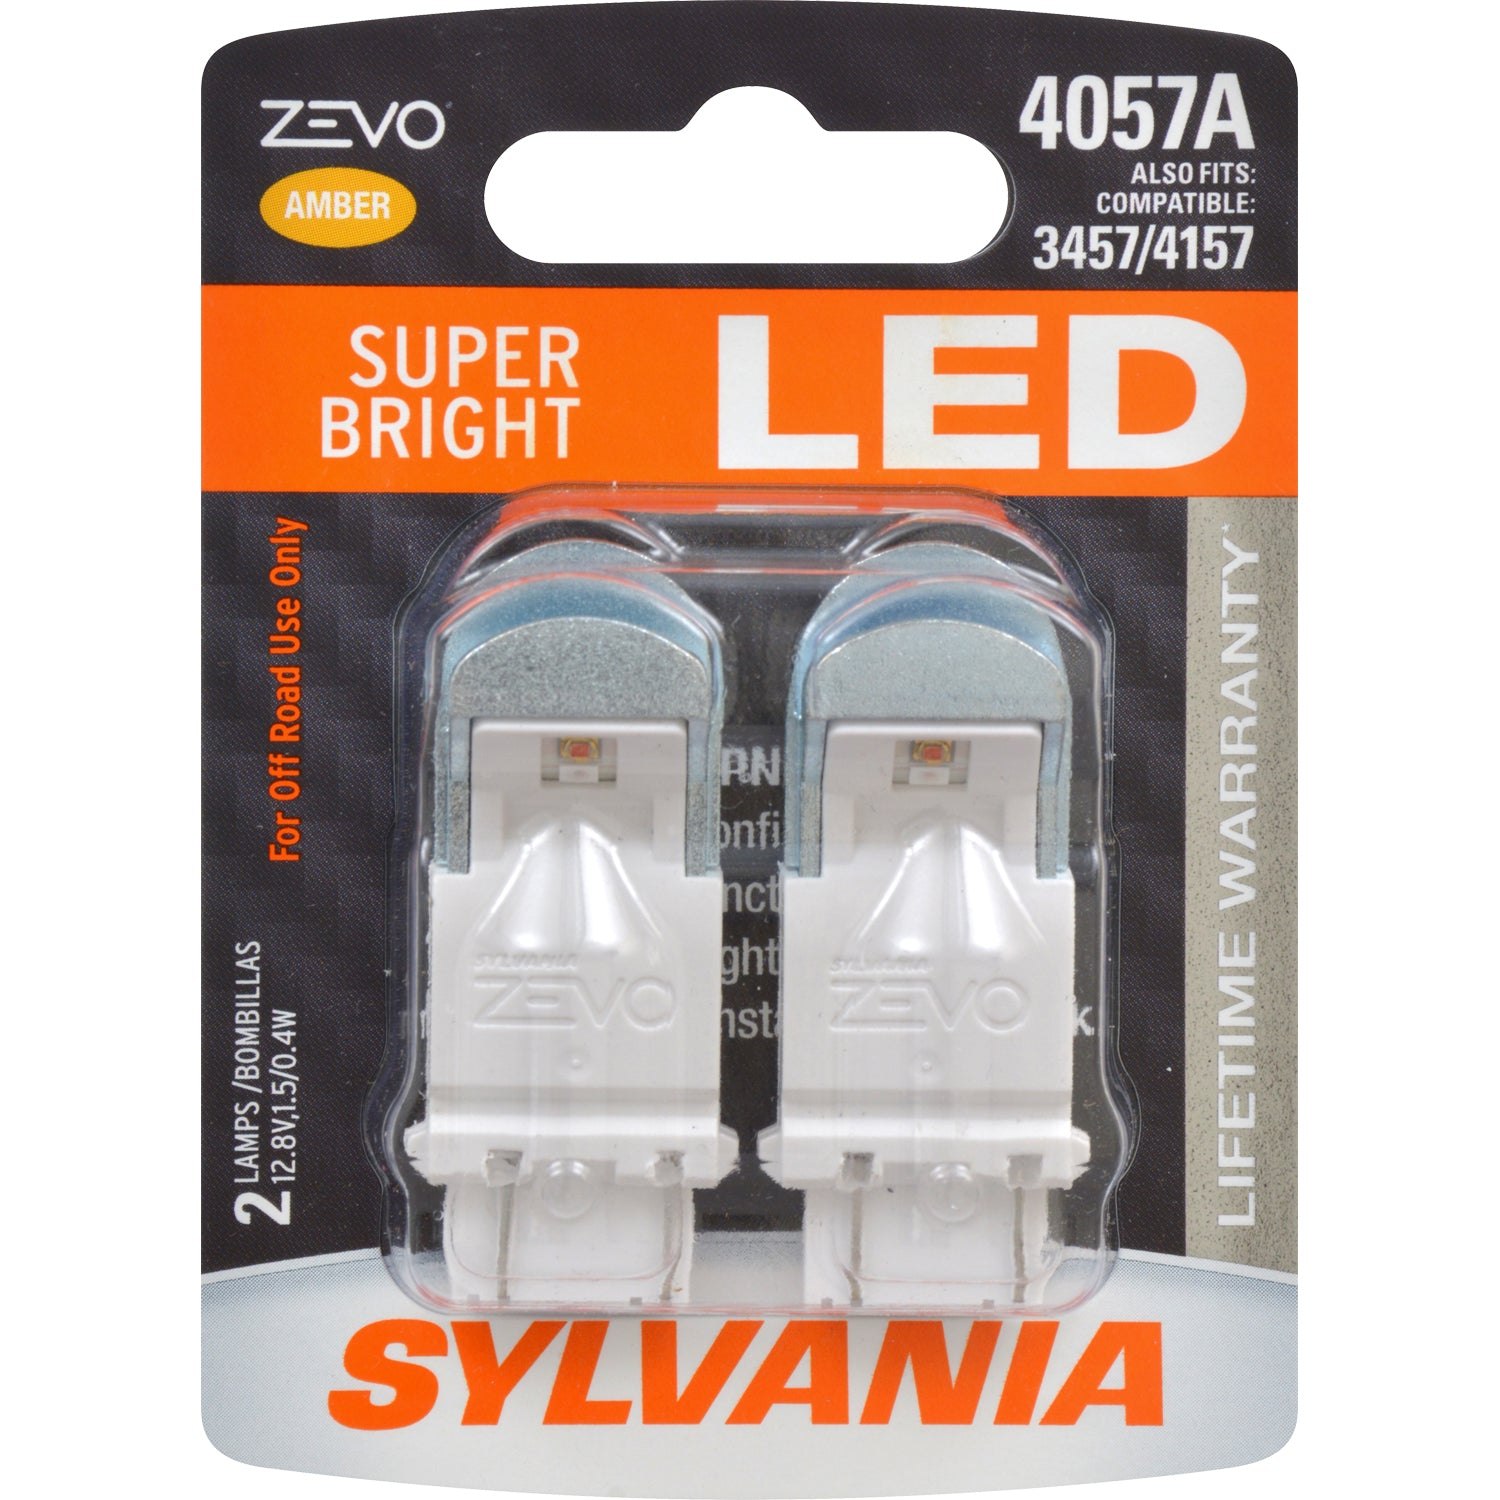 2-PK SYLVANIA 4057 ZEVO LED Amber Automotive Bulb - also fits 3457 & 4157